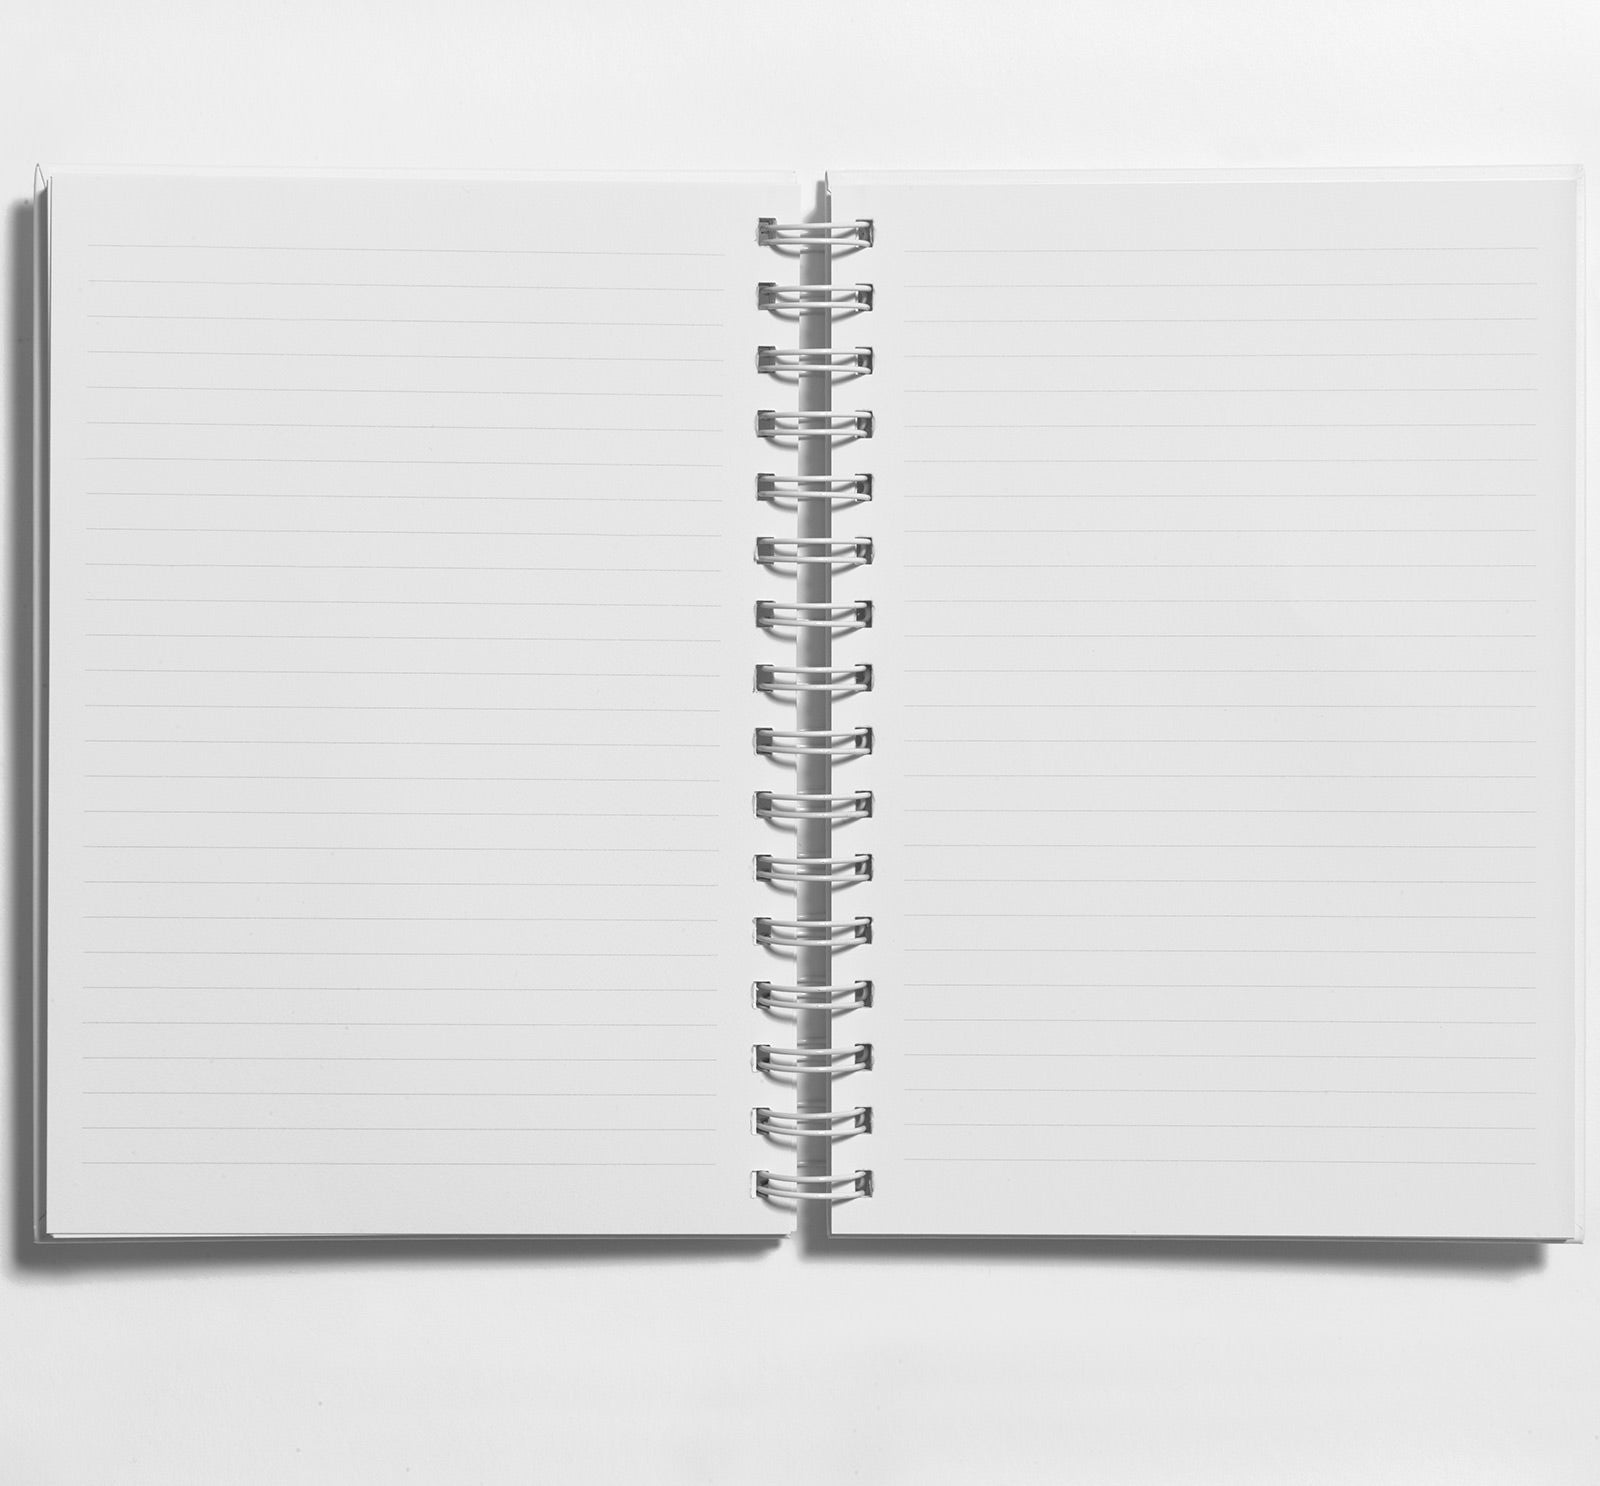 Personalised Notebook with Lined Paper